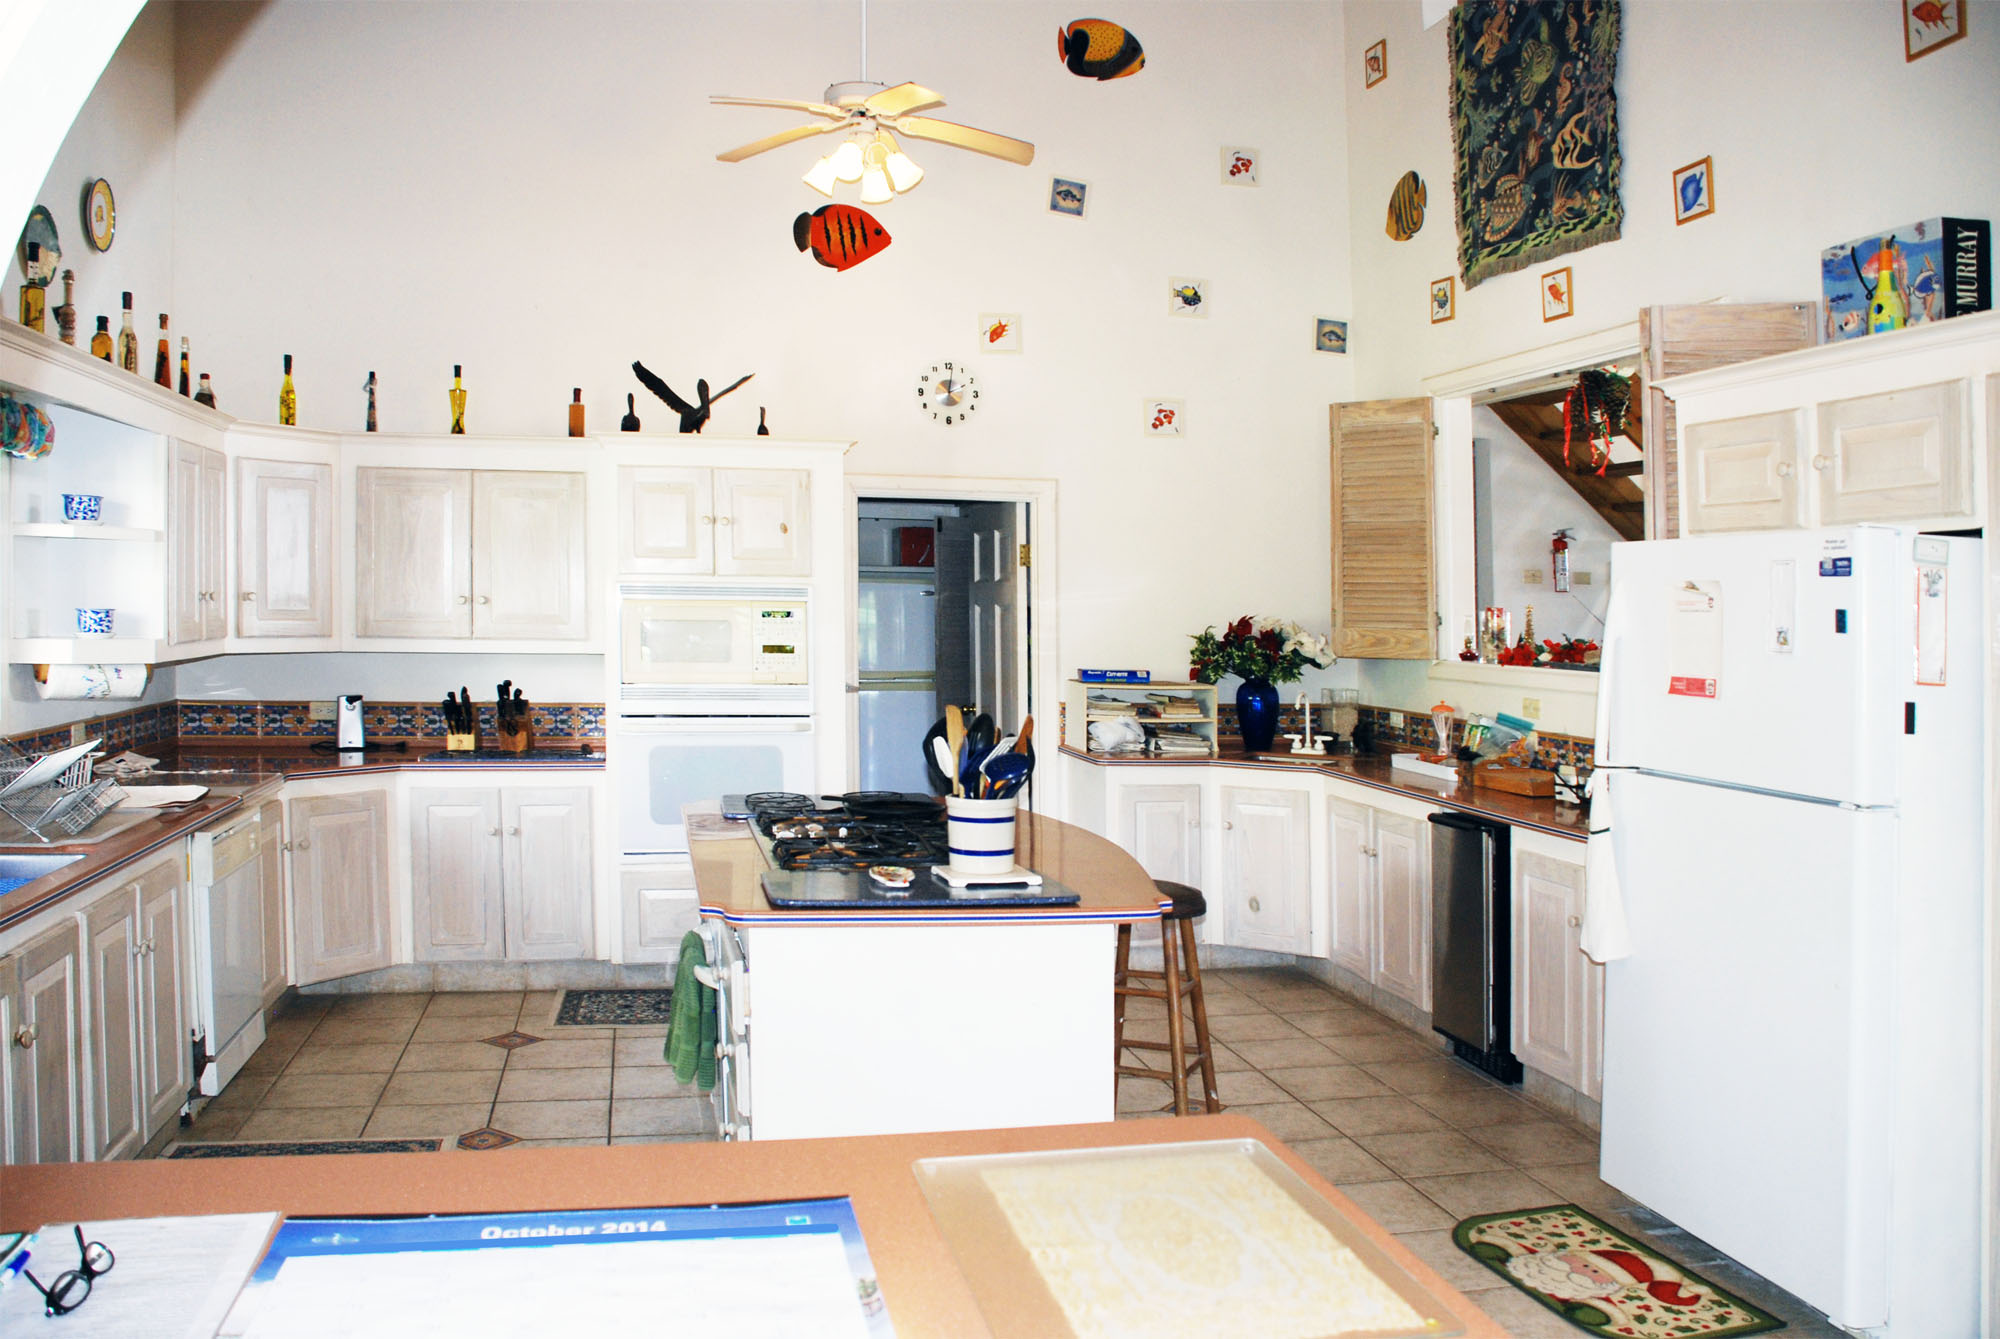 SOL Y MAR VILLA, TOBAGO W.I. Large kitchen and pantry, center island, two ovens, two refrigerators, microwave